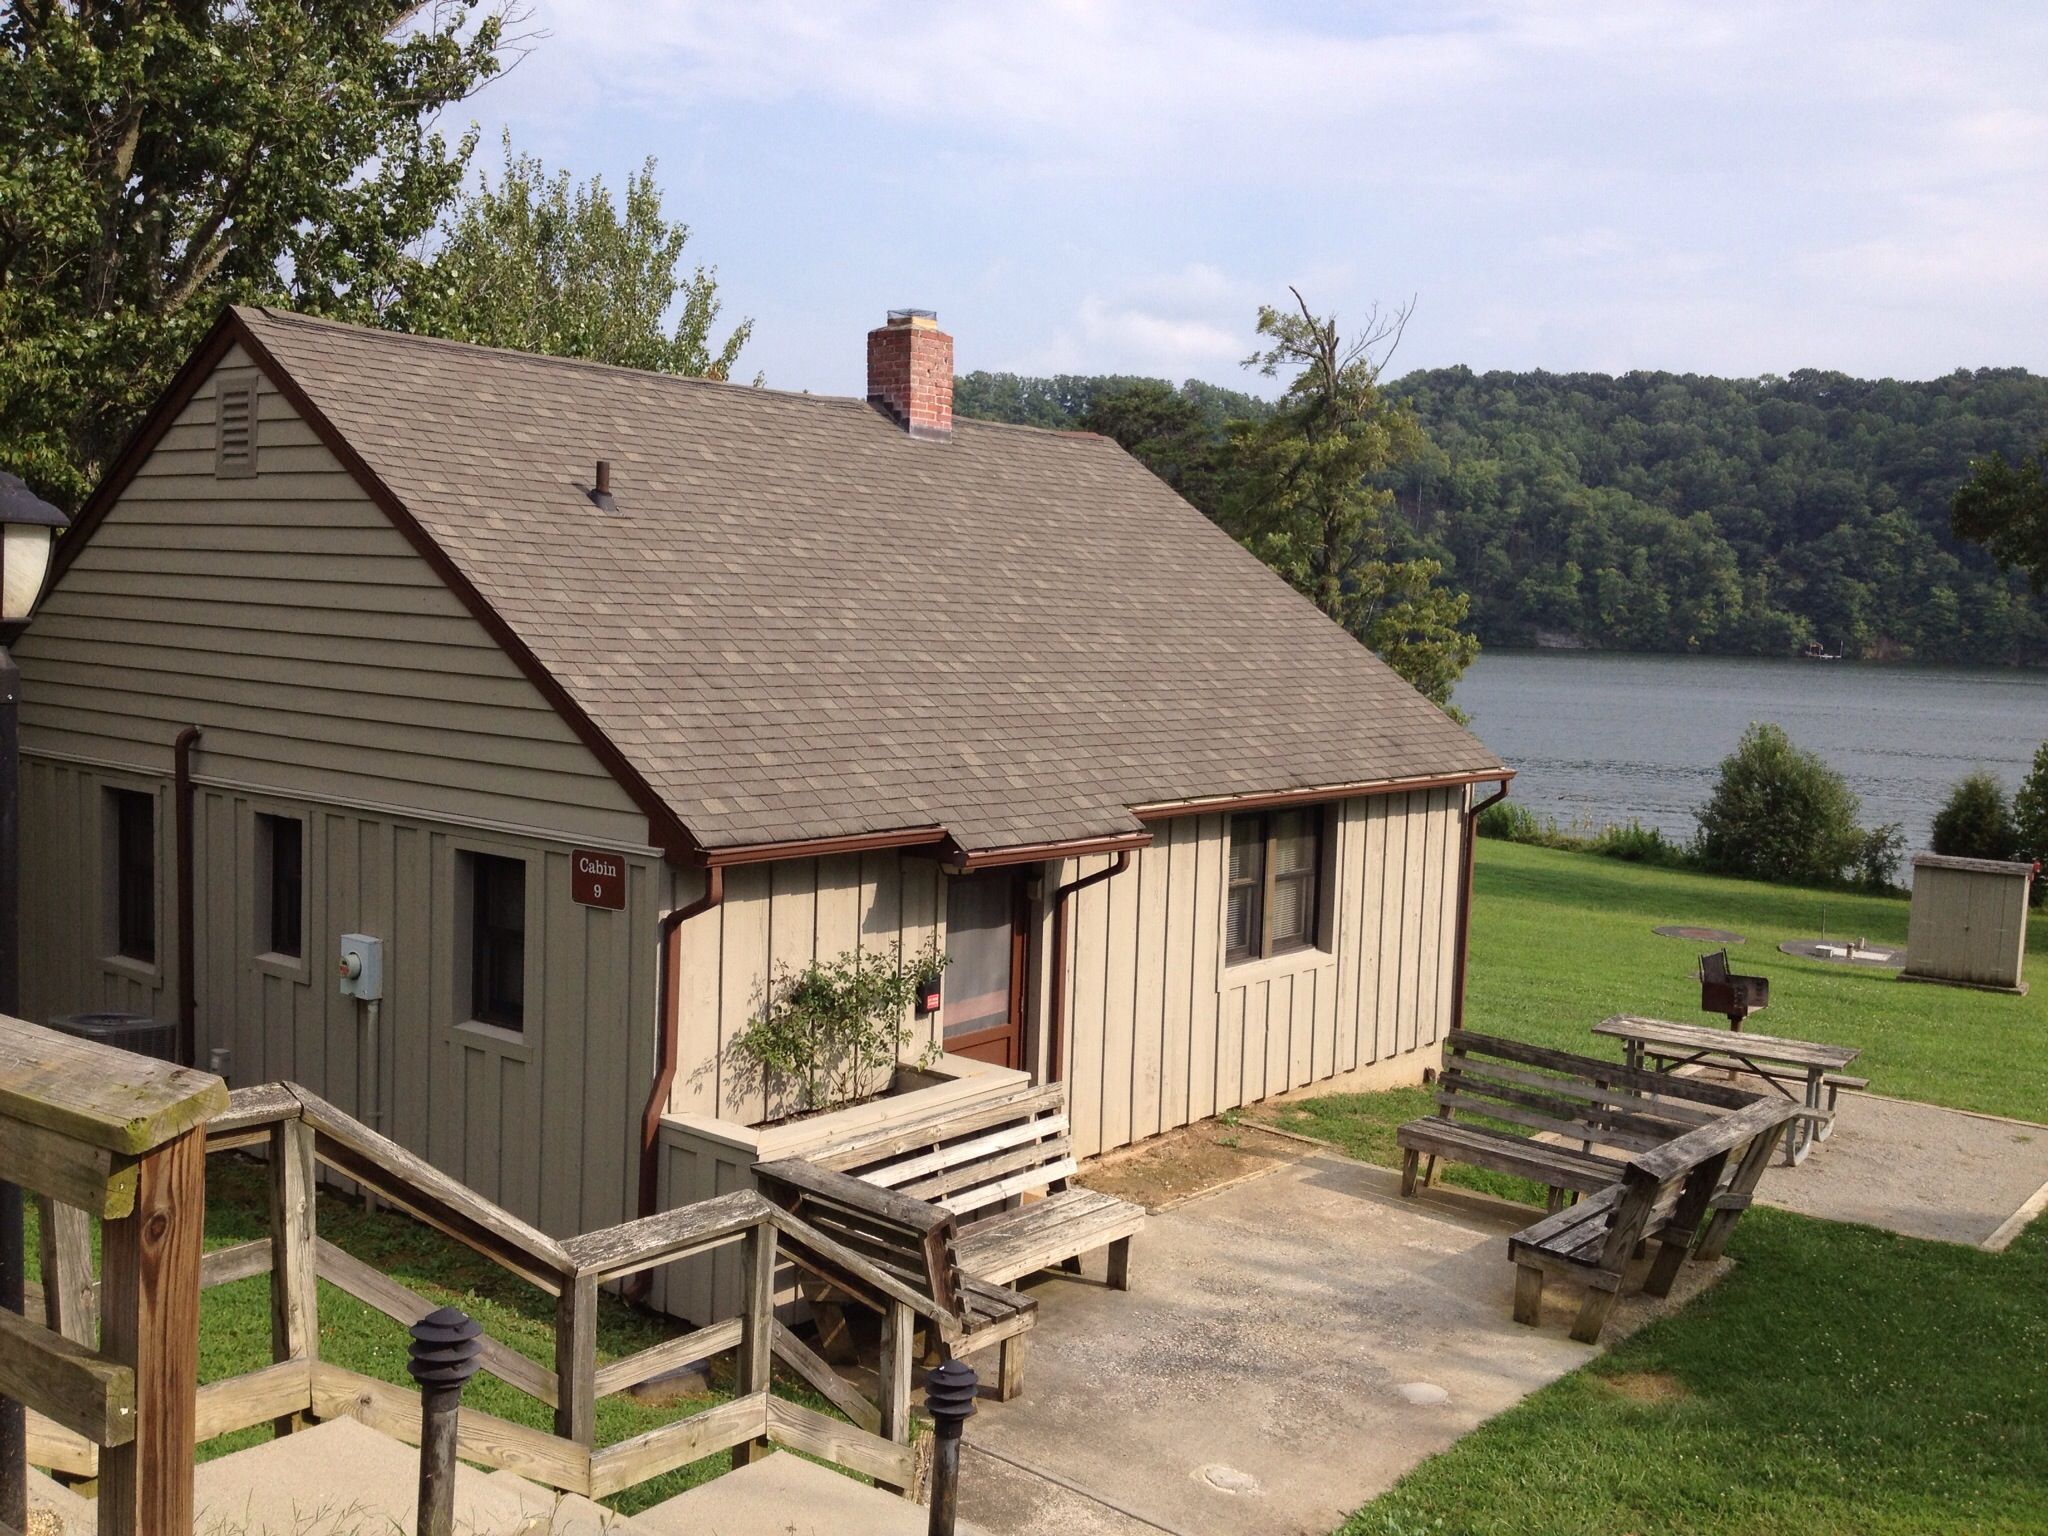 File:Cabin 9 Water View Cabin Uploaded By PE (11741617715)